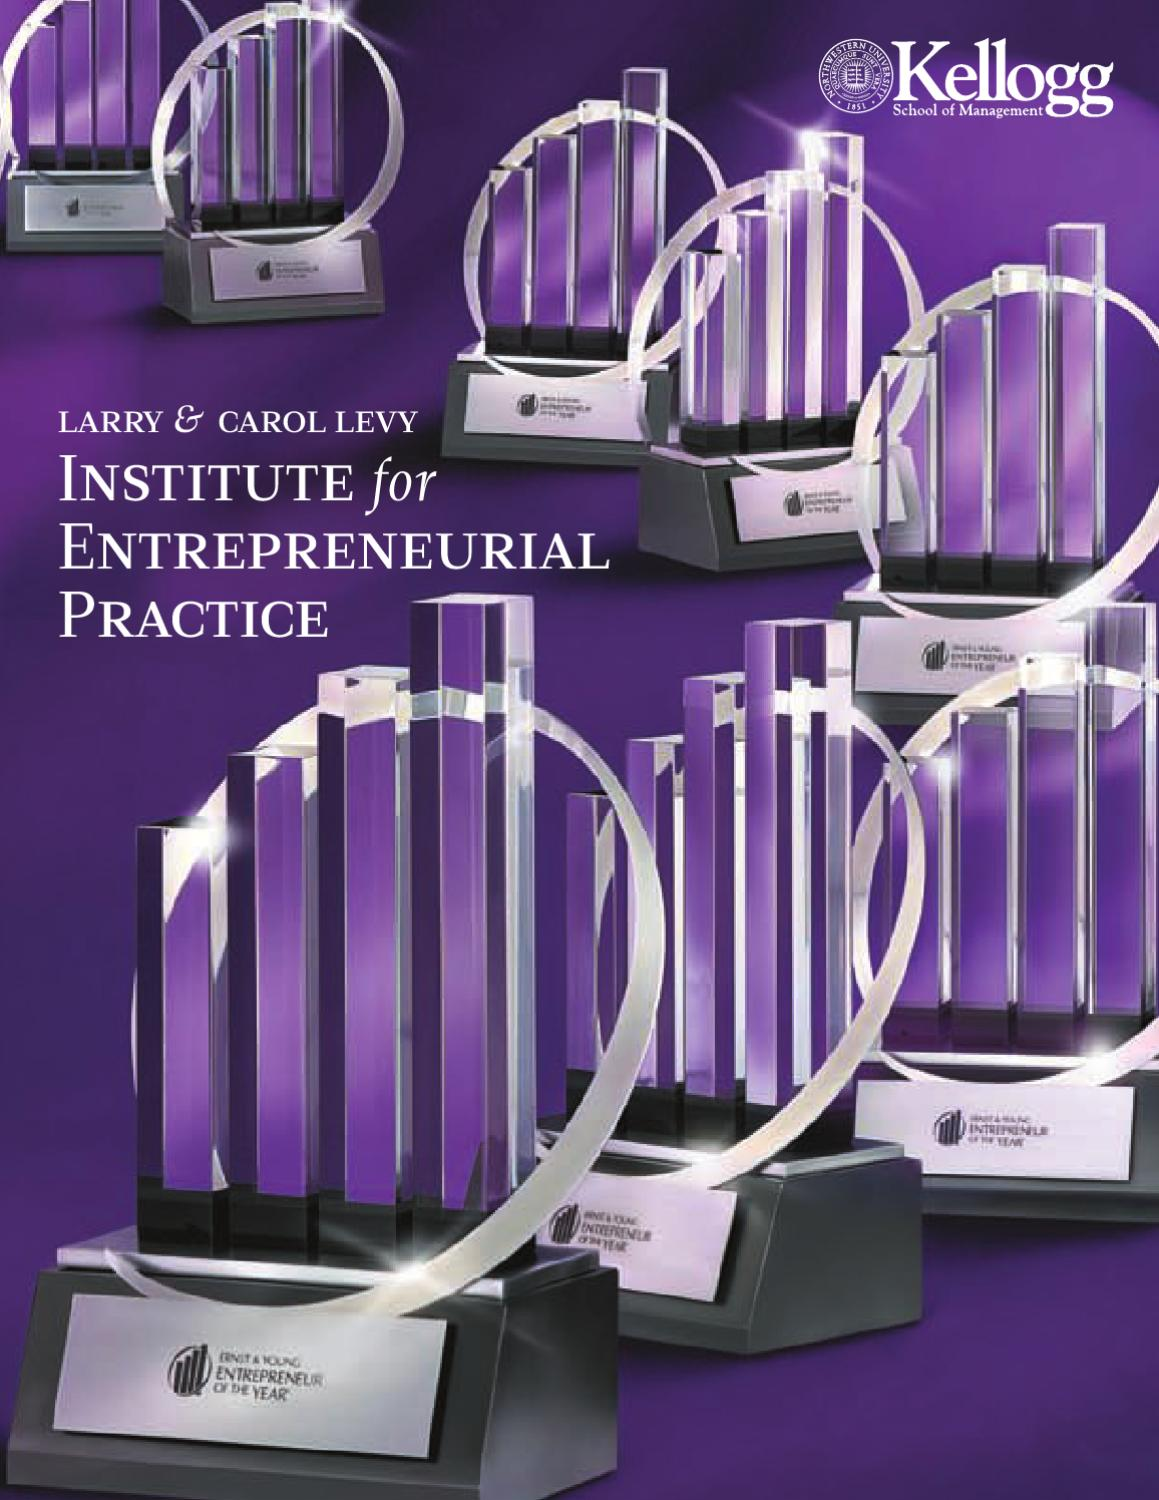 Levy Entrepreneur Institute Report By Kellogg School Of. Top Plastic Surgeons In Miami. Masters In Higher Education Online. Credit Card Consolidation Calculator. Commercial Cleaner Job Description. Pharmaceutical Stability Chambers. Colorado Homeschool Groups 300 Cars For Sale. Business Moving Notice Pool Repair Scottsdale. Online Master Of Finance Programs